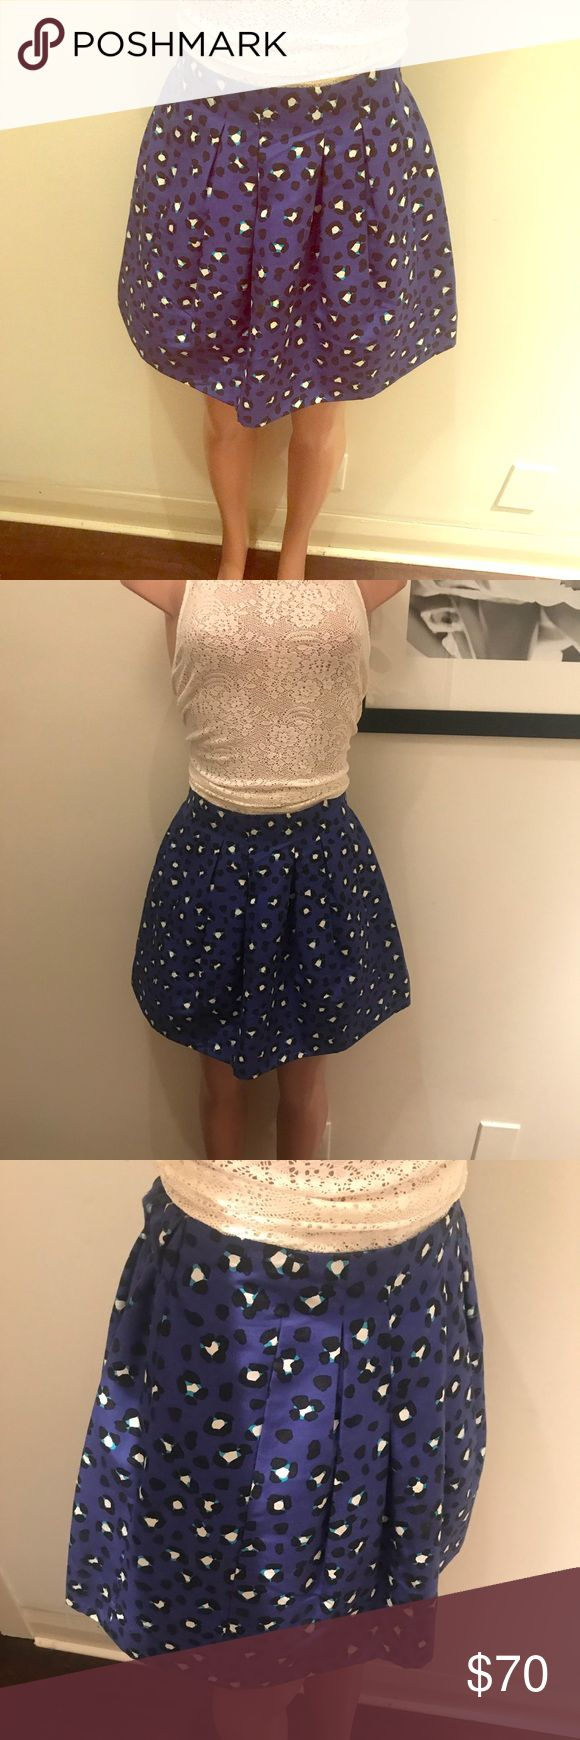 KATE ♠️  Cyber cheetah skirt KATE SPADE ♠️ NYC♠️ four (but fits a 4-8 easily)♠️ super stretchy expandable waistband, synches in the back with a always smooth front♠️ the skirt itself is an A frame skirt, it's not stretchy it's still, to hold its vintage looking shape at all timesblue/Black/White, the cyber cheetah is one sexy skirt, with front pockets ? SAY WHAT?!!  Yesss!!!  Tag has been cut out (sorry) FYI; I am not a size 4, it was the only size they had left, so I purchased it anyway…